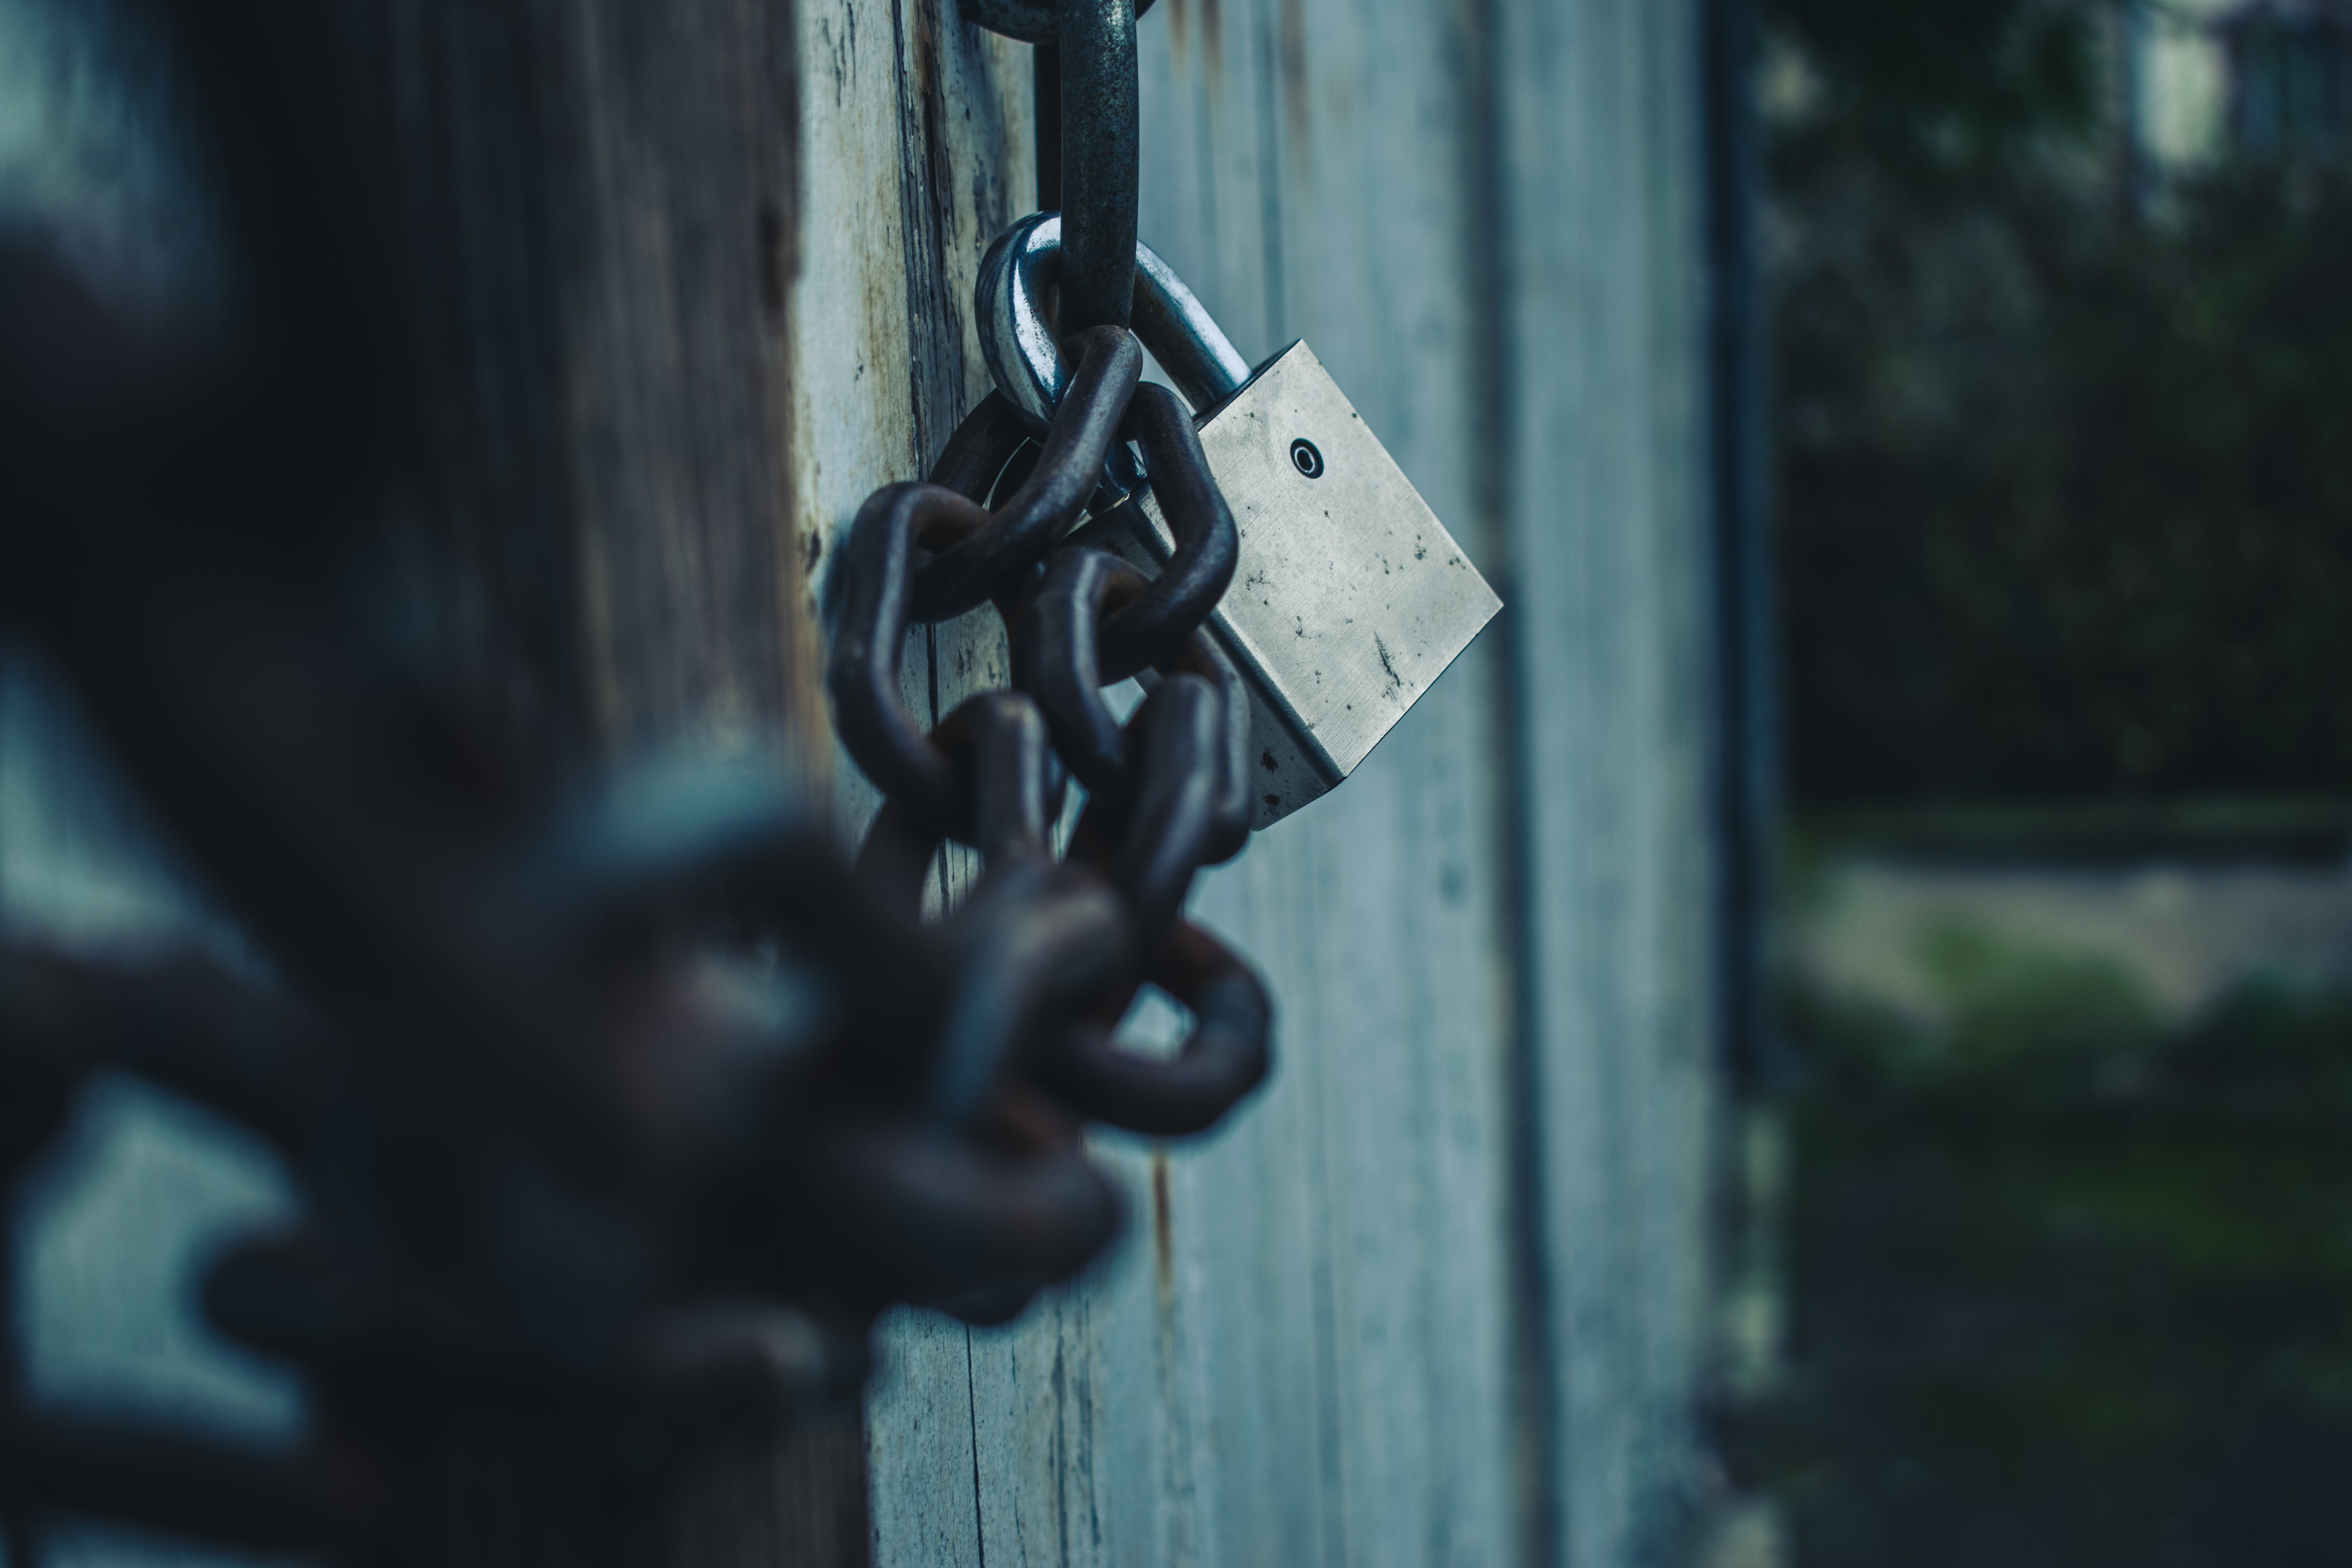 Free stock photo of chains, doors, locks, shed